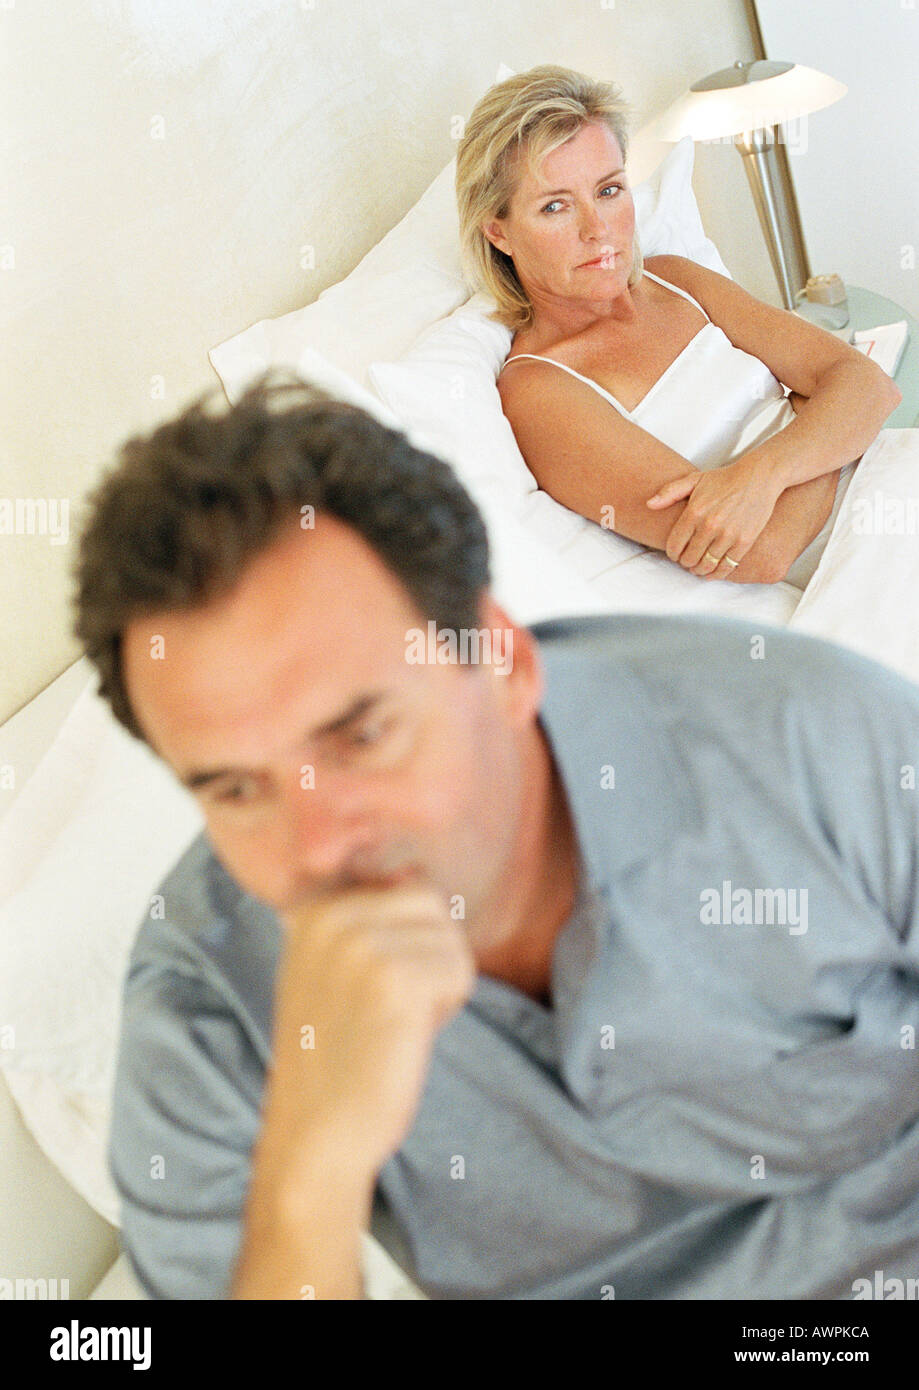 Couple in bed, woman with arms folded, man holding head - Stock Image